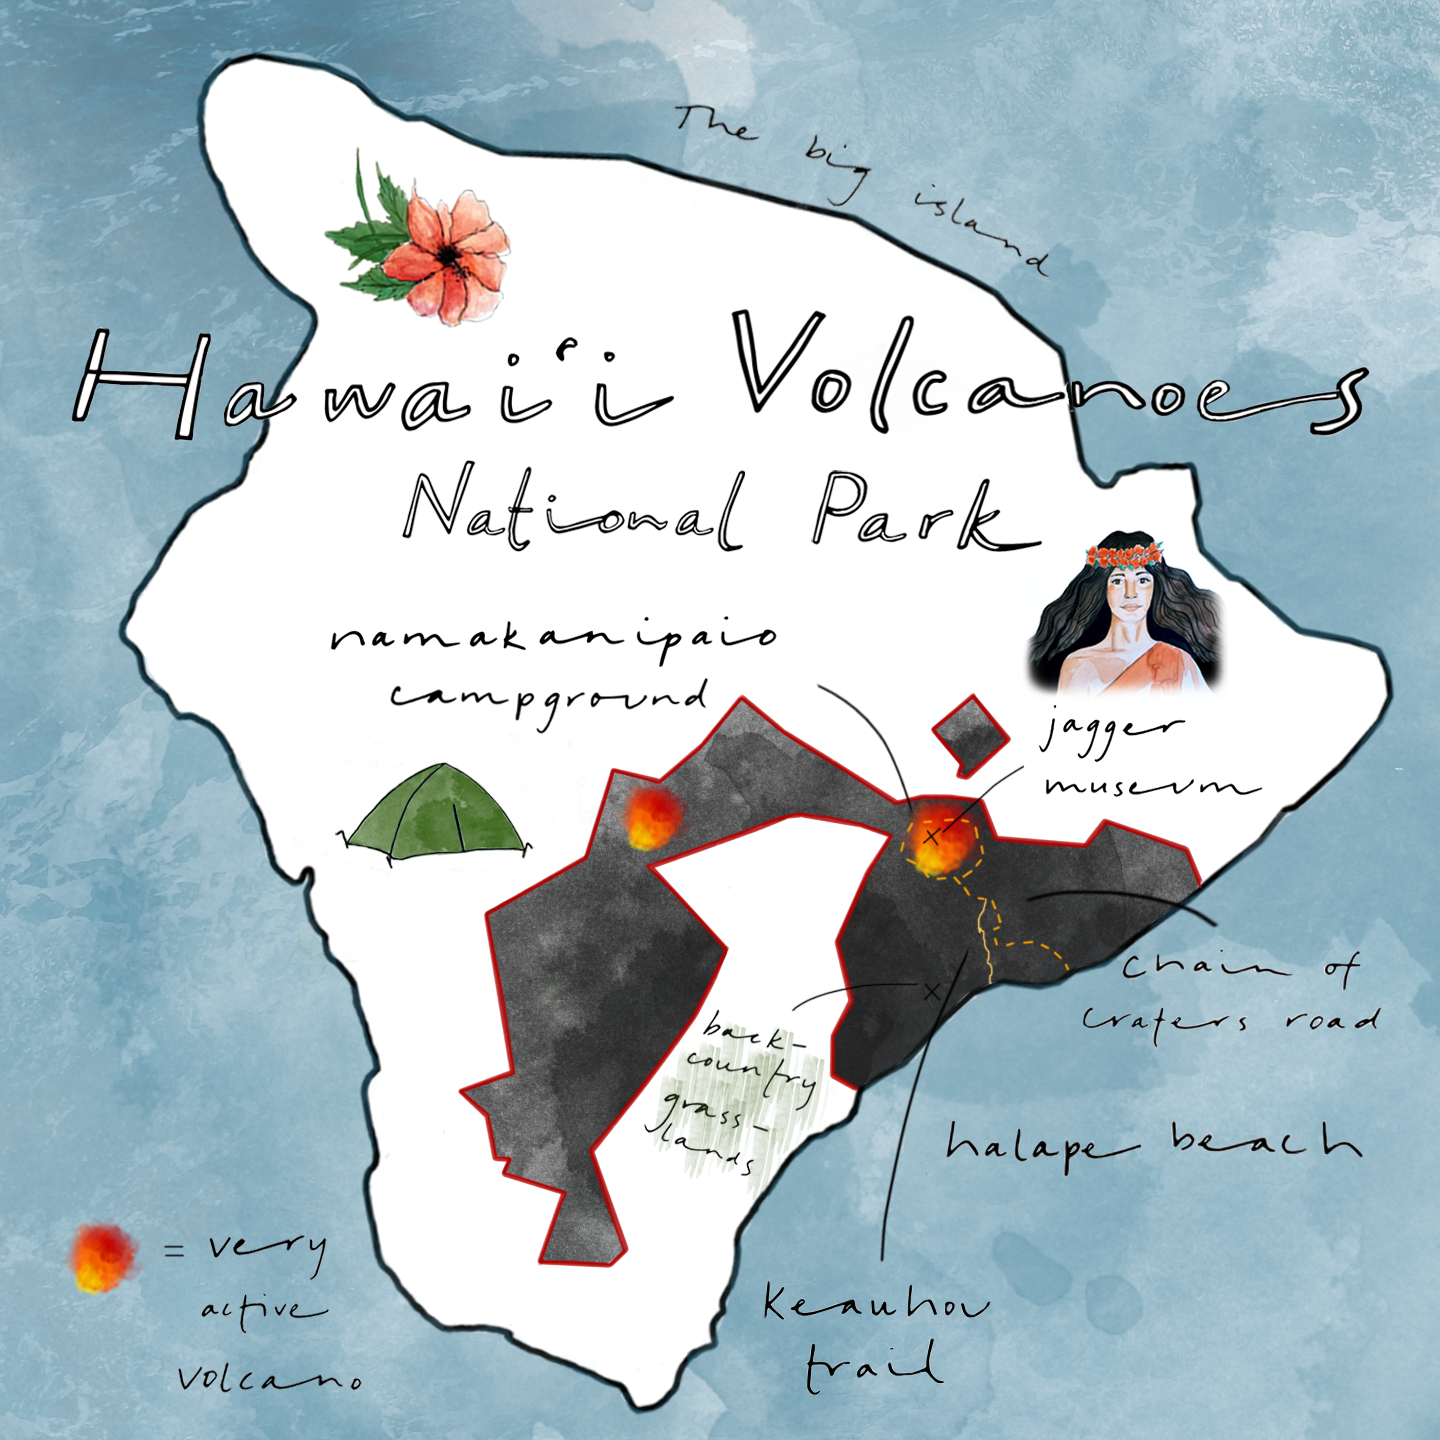 Hawaii Volcanoes National Park Map Final V3 copy.png